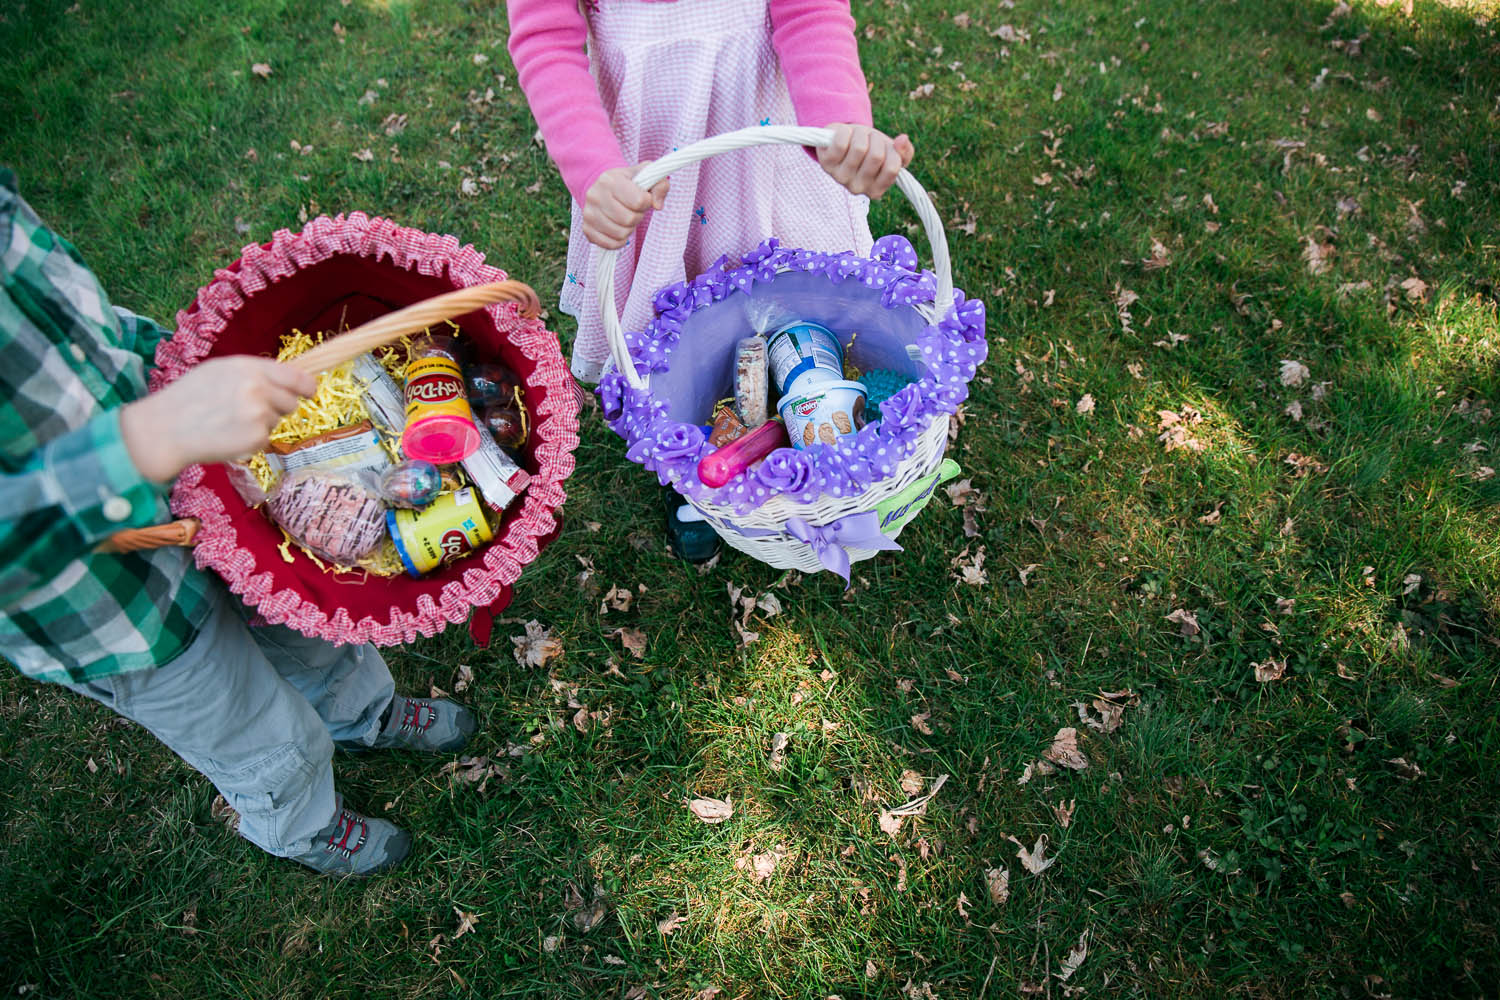 Extended-Family-Easter-Photo-Session-11.jpg